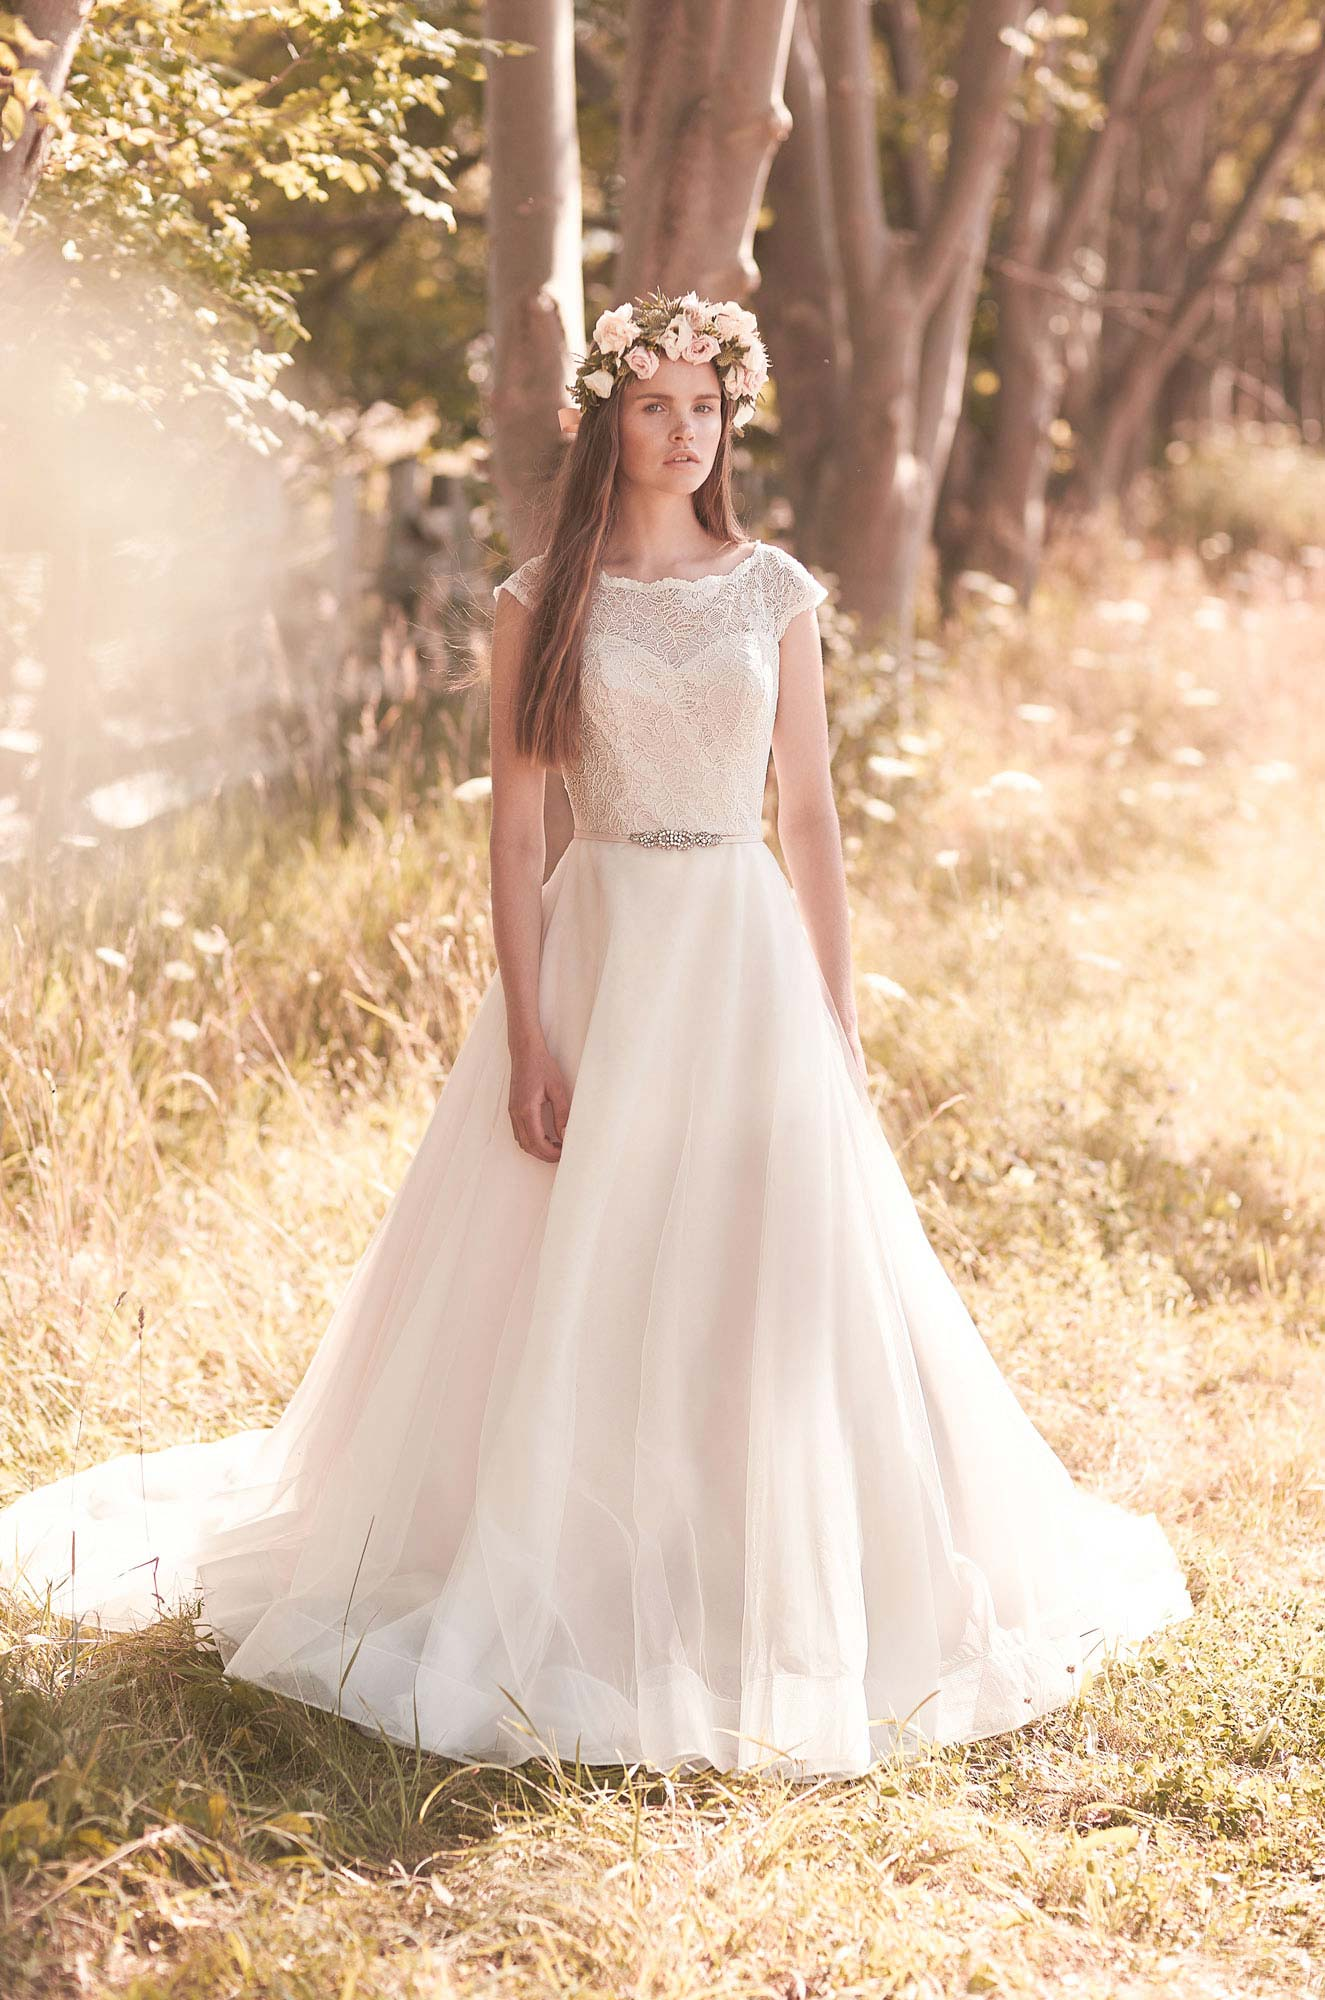 Full Tulle Skirt Wedding Dress - Style #2068 | Mikaella Bridal